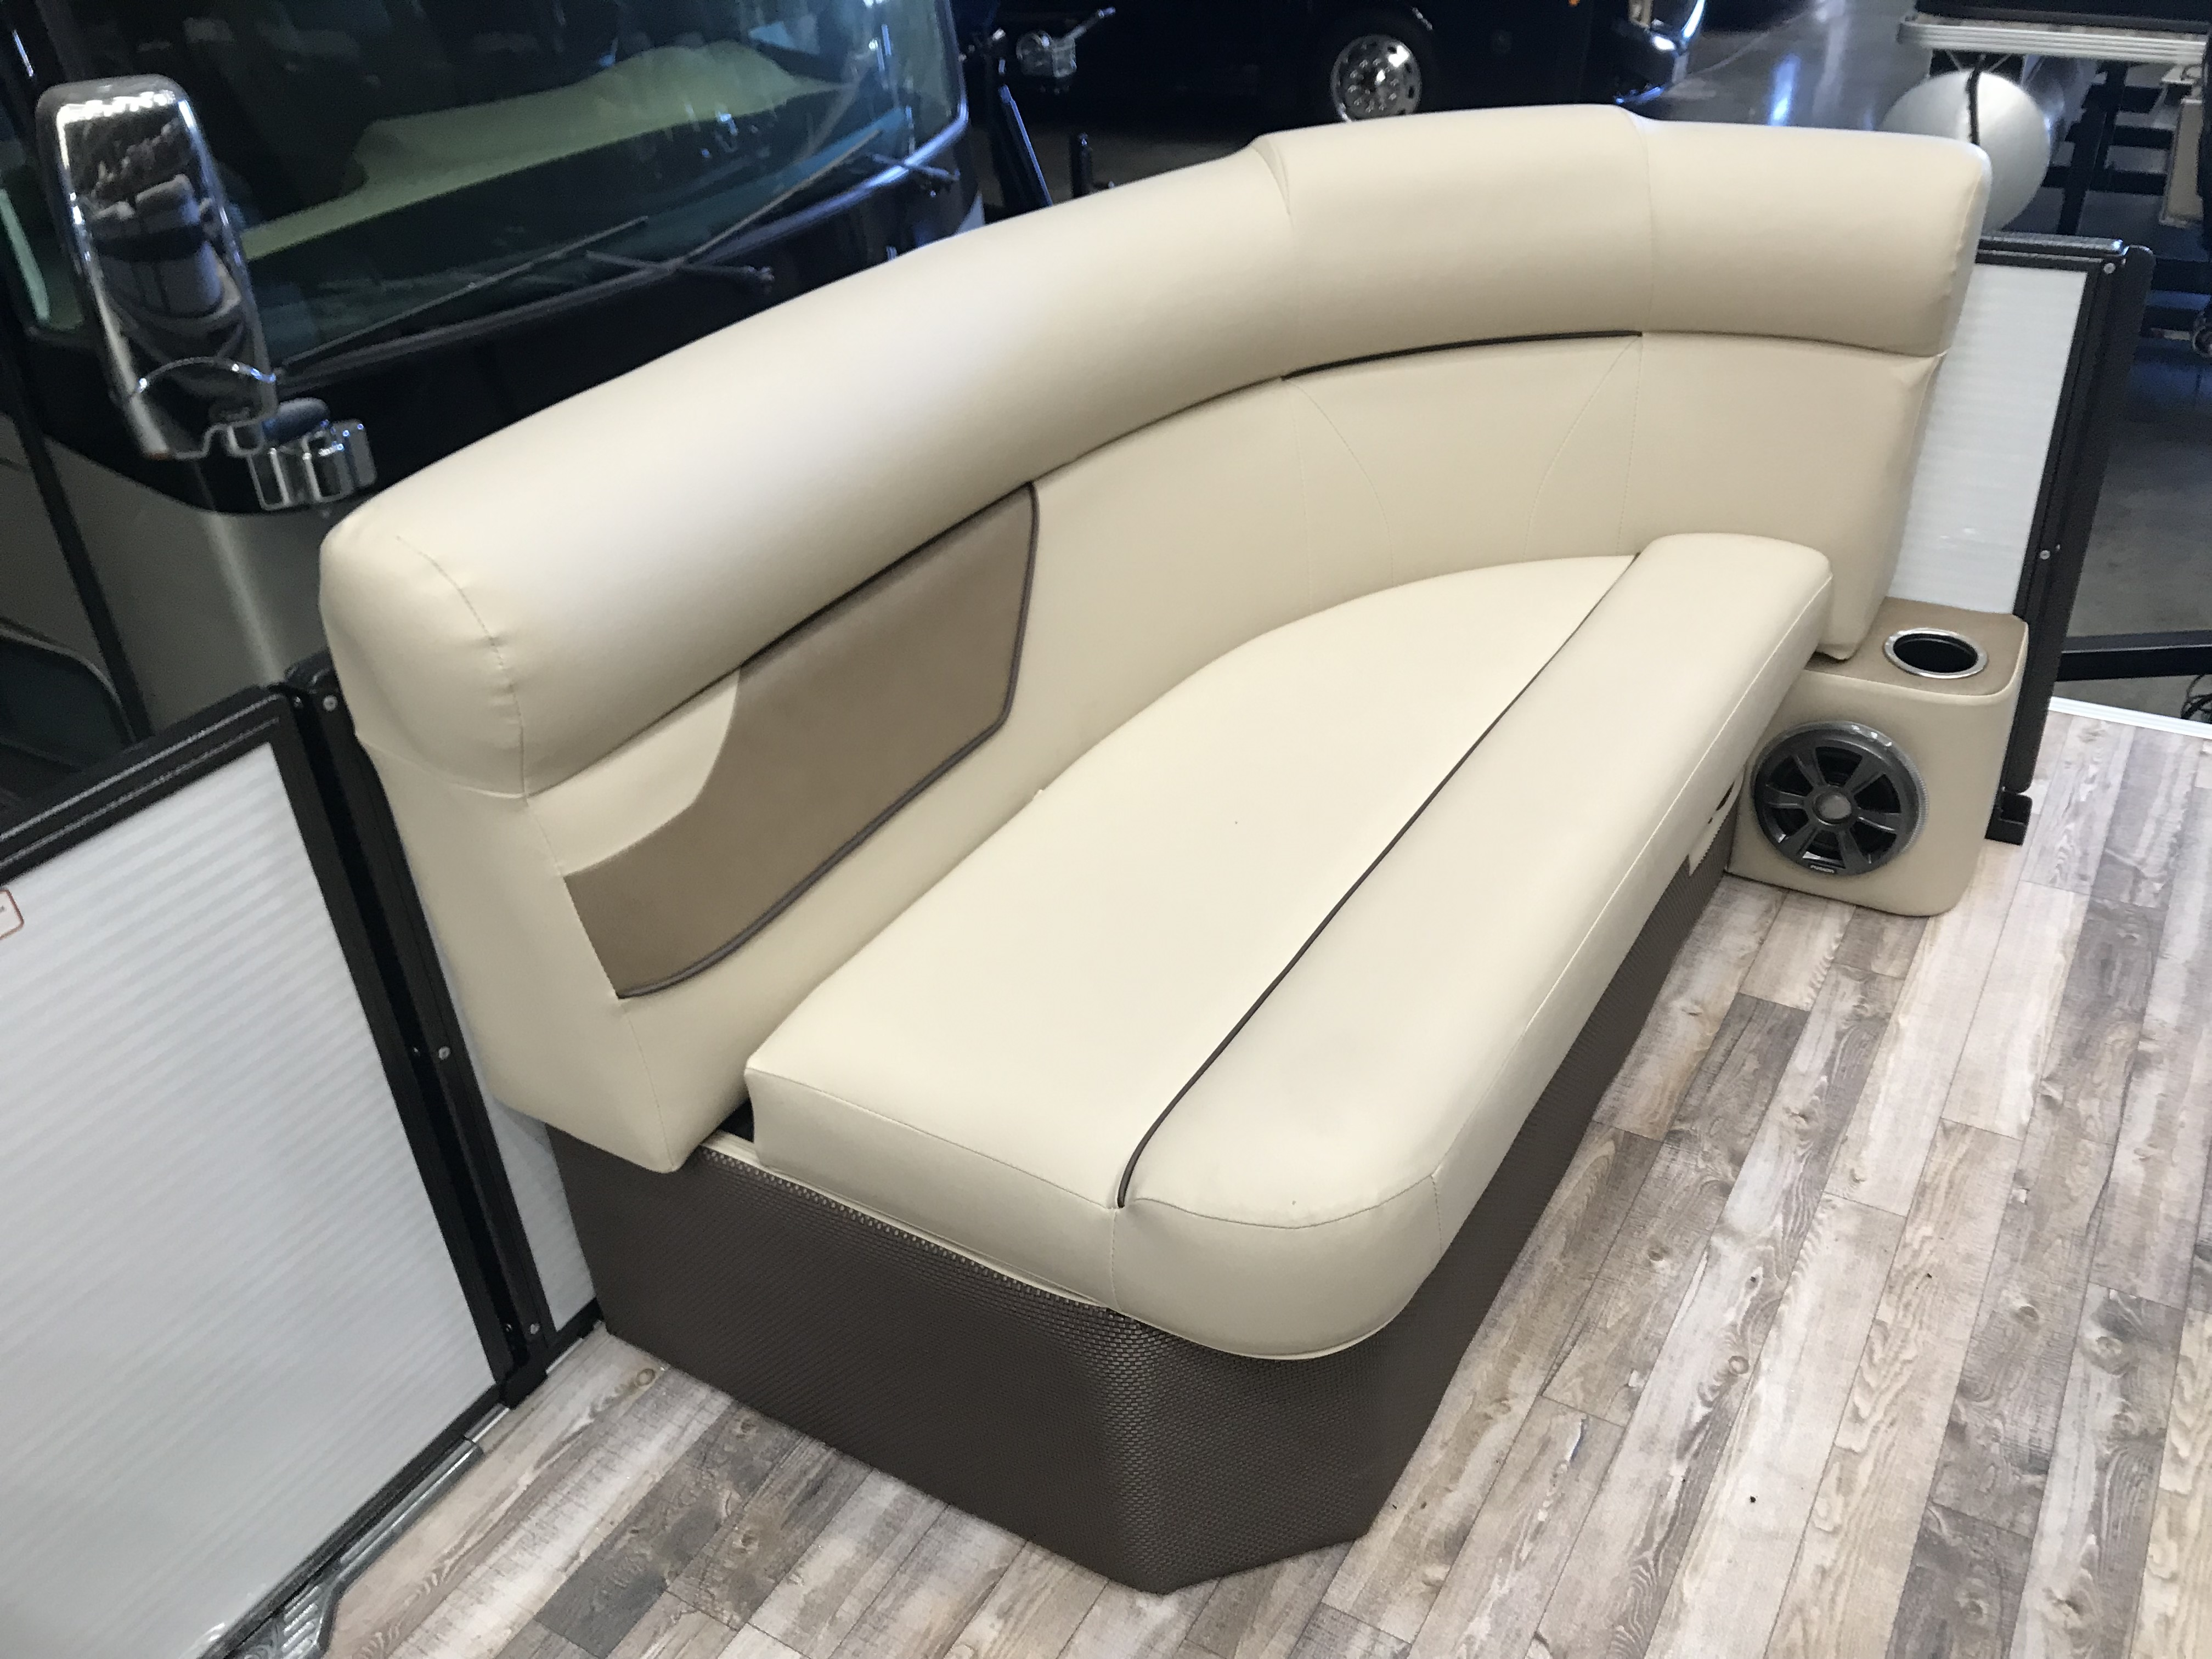 2019 Crest boat for sale, model of the boat is CREST I 200 L & Image # 401 of 480